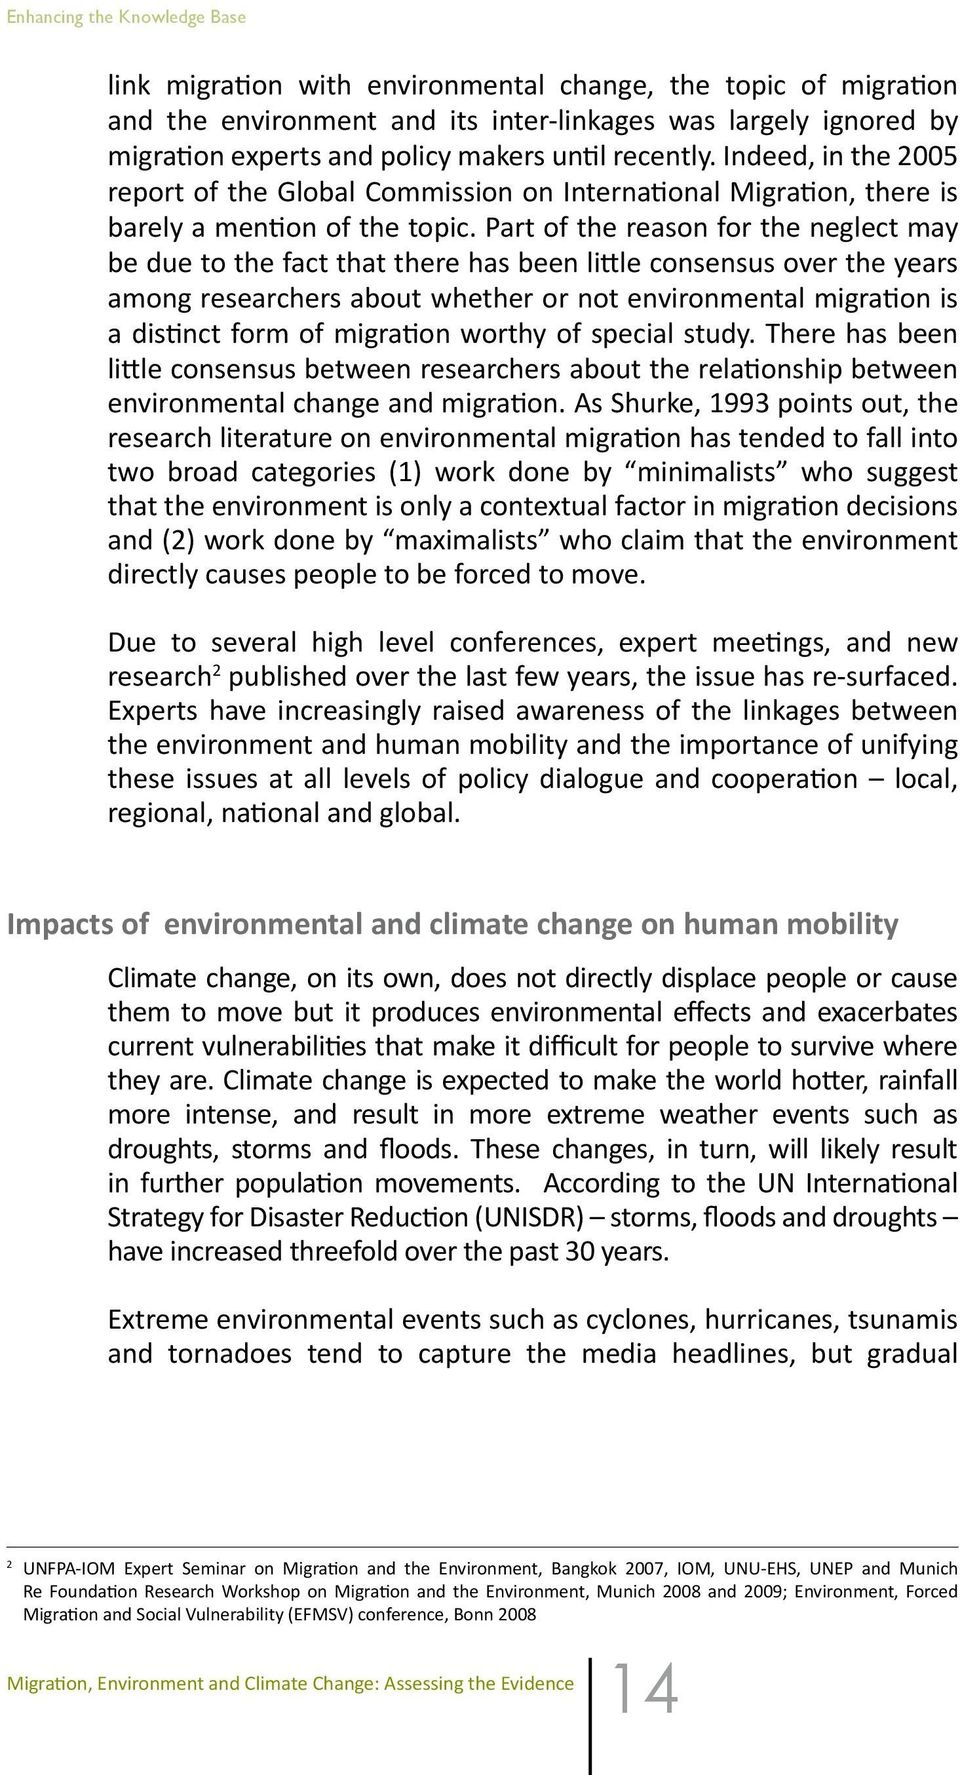 Part of the reason for the neglect may be due to the fact that there has been little consensus over the years among researchers about whether or not environmental migration is a distinct form of